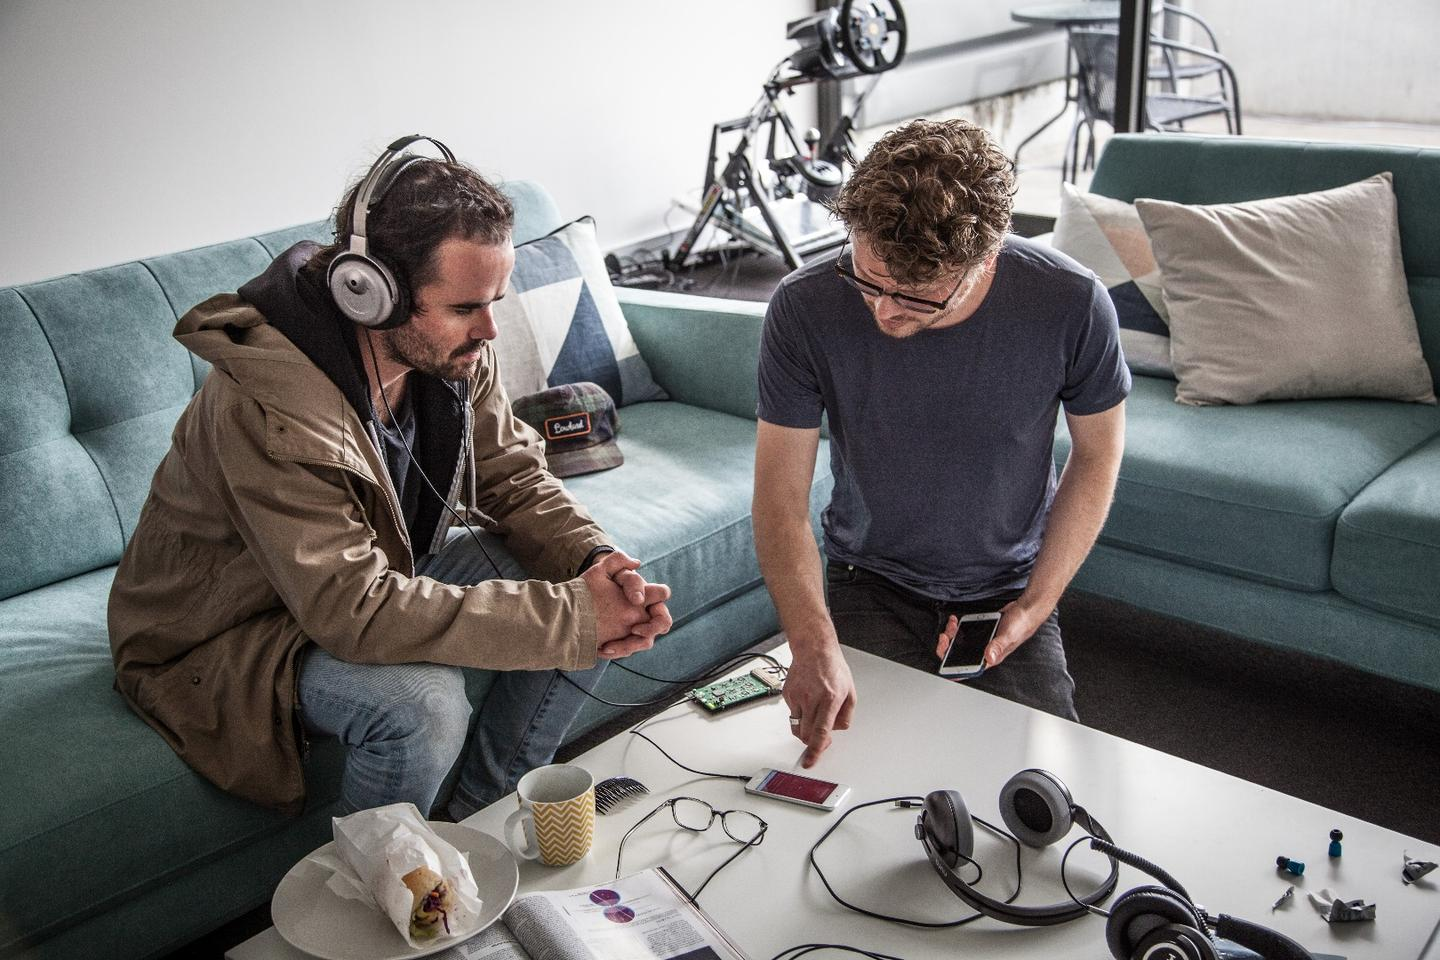 Gizmag's Nick Lavars with Nura's Kyle Slater, testing the Nuraphone adaptive headphones